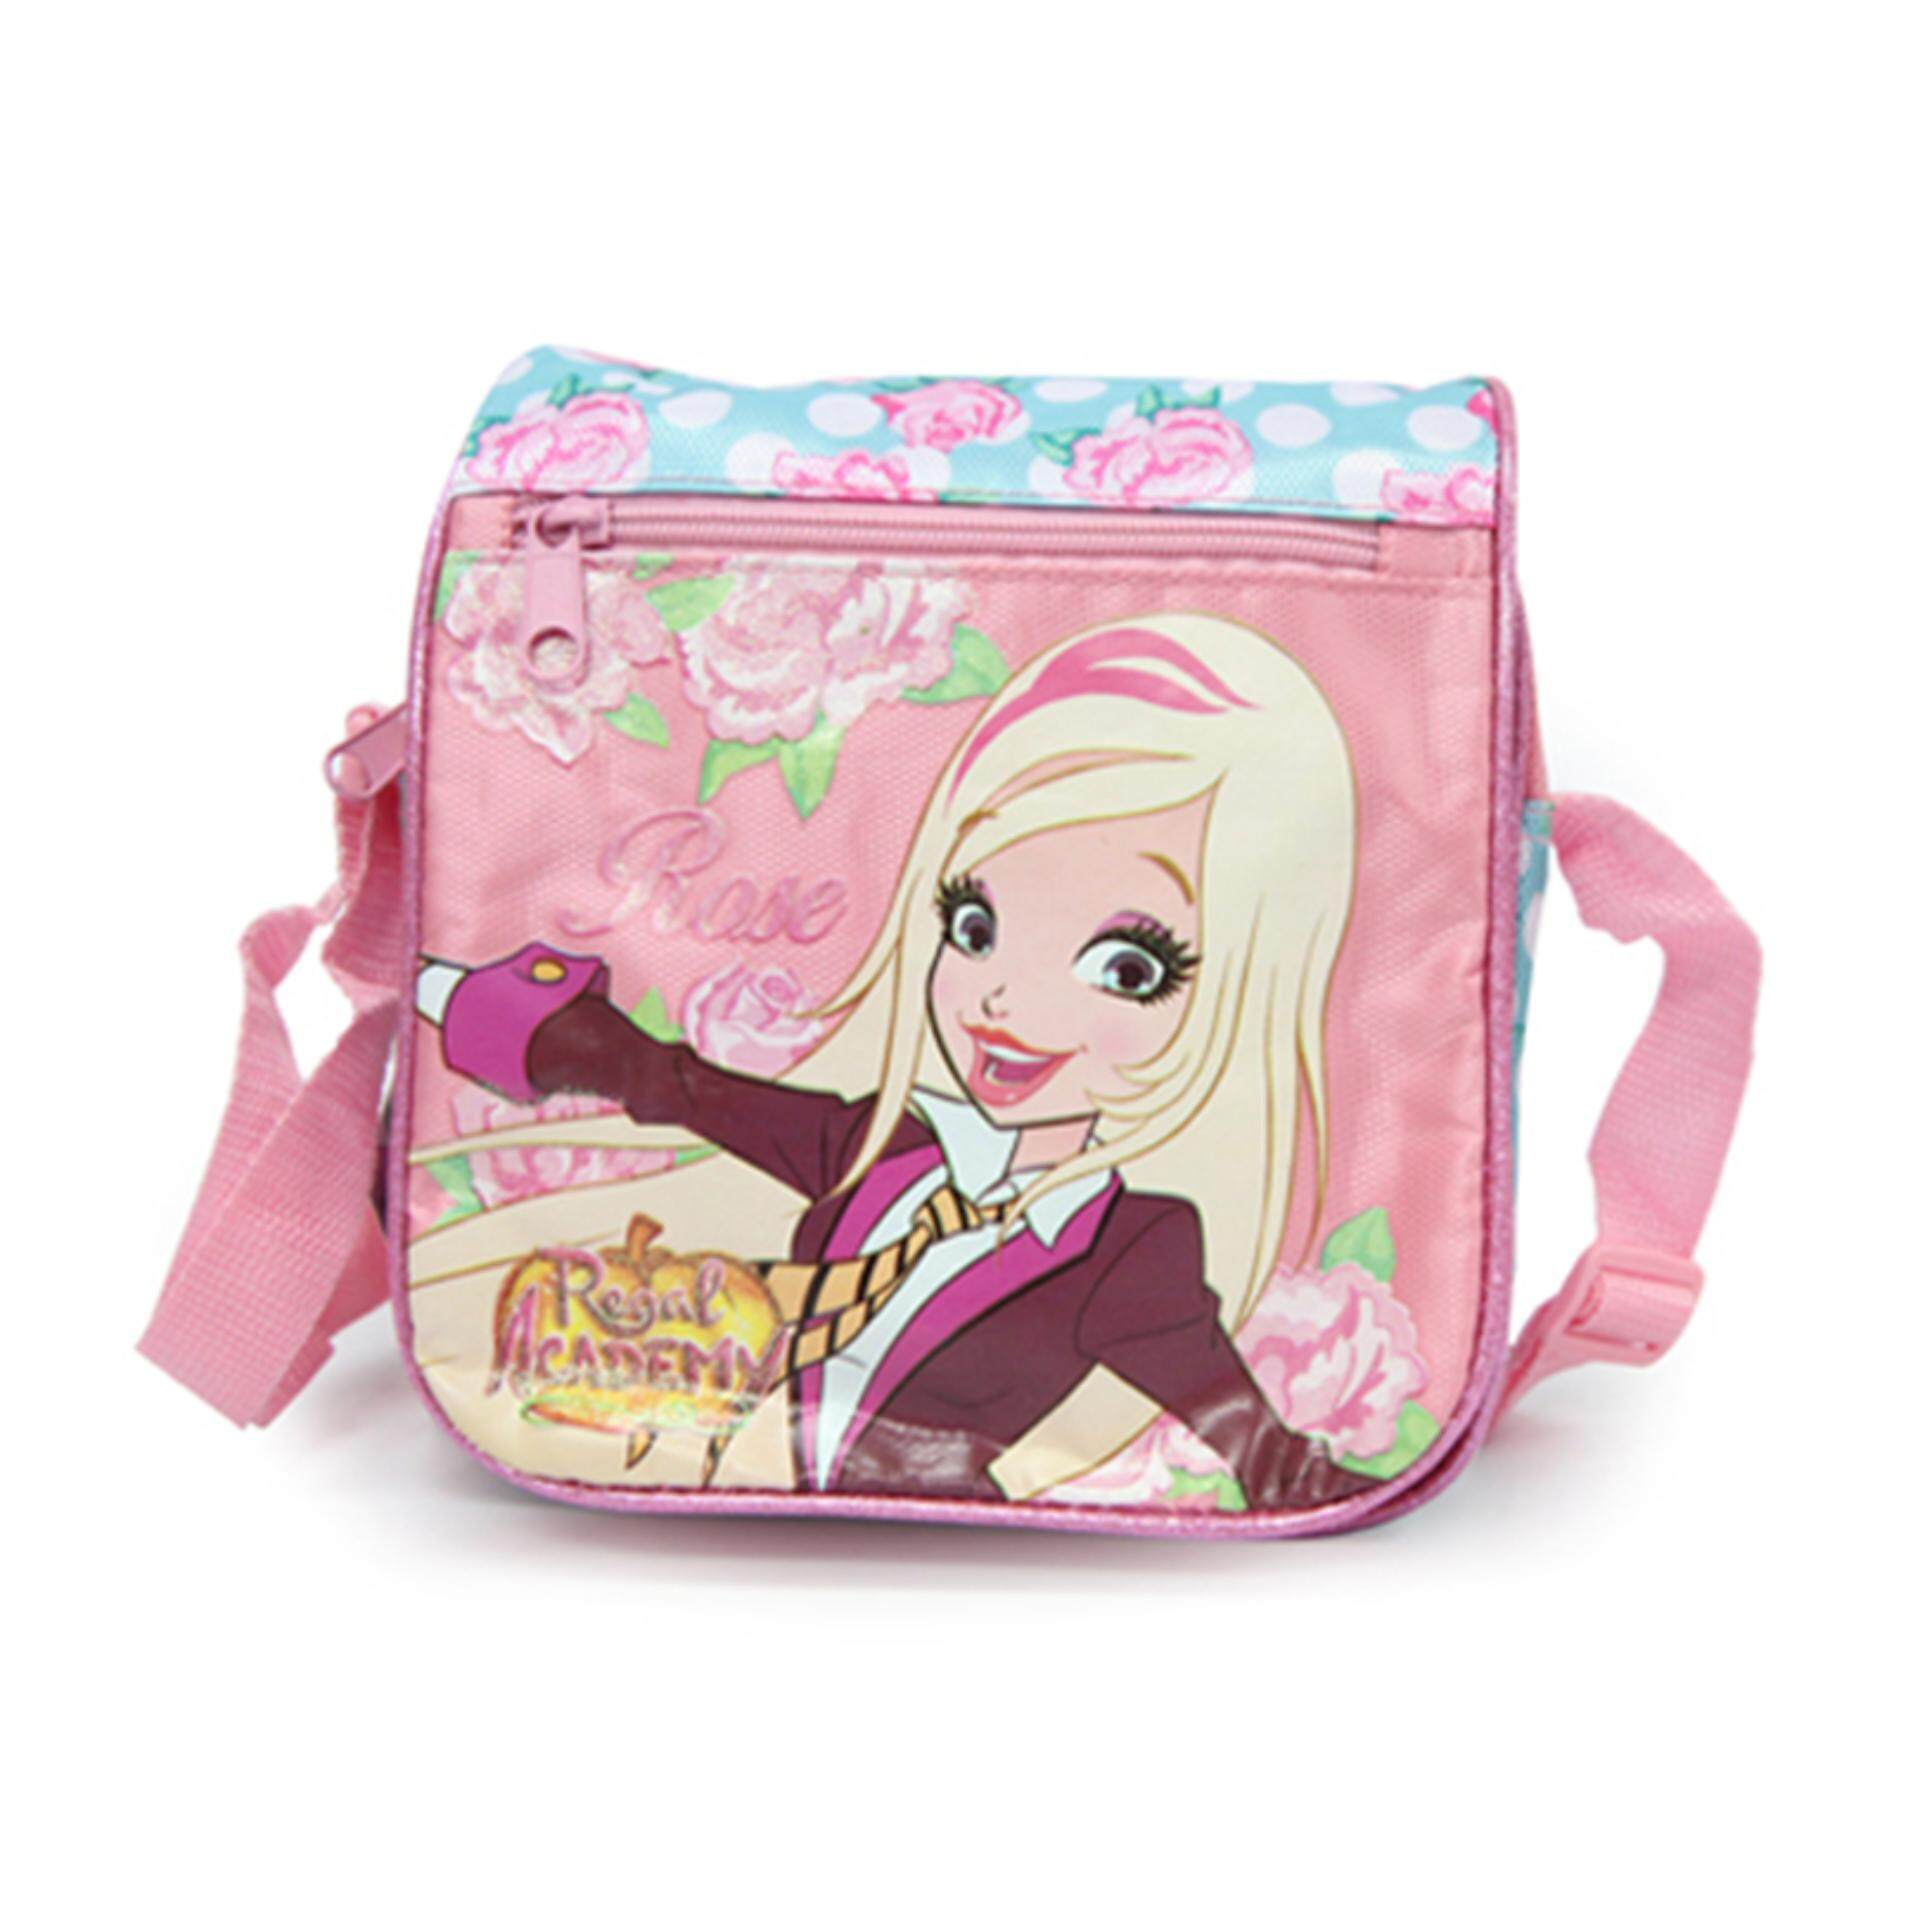 Regal Academy Sling Bag - Pink Colour